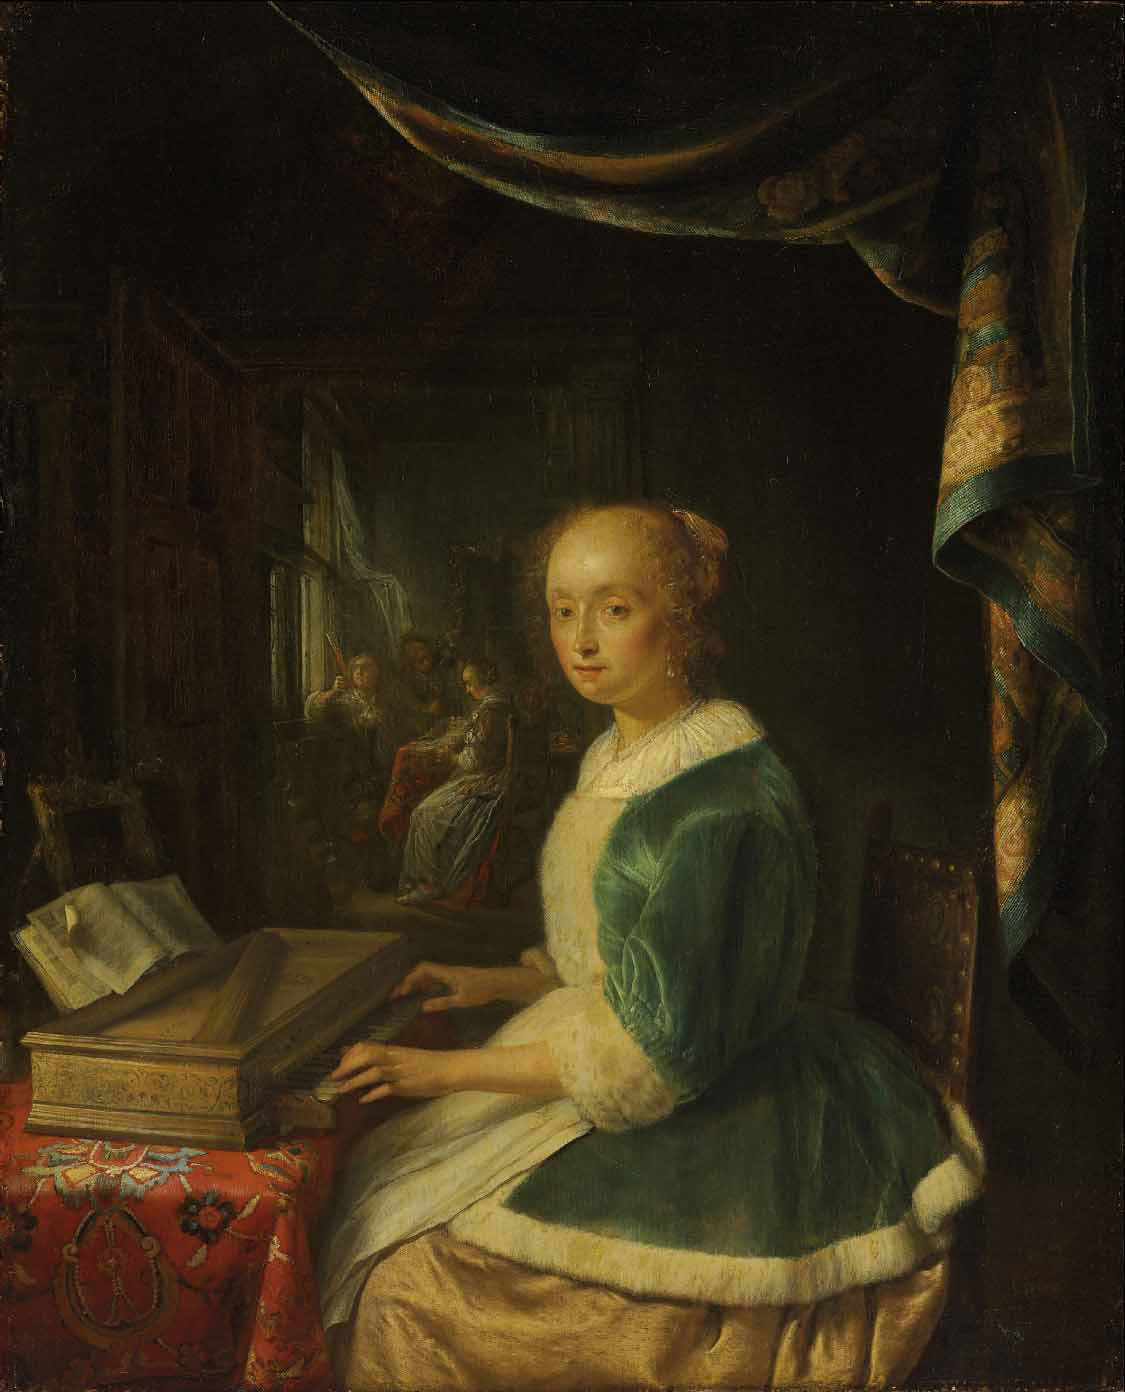 A young lady playing a clavichord